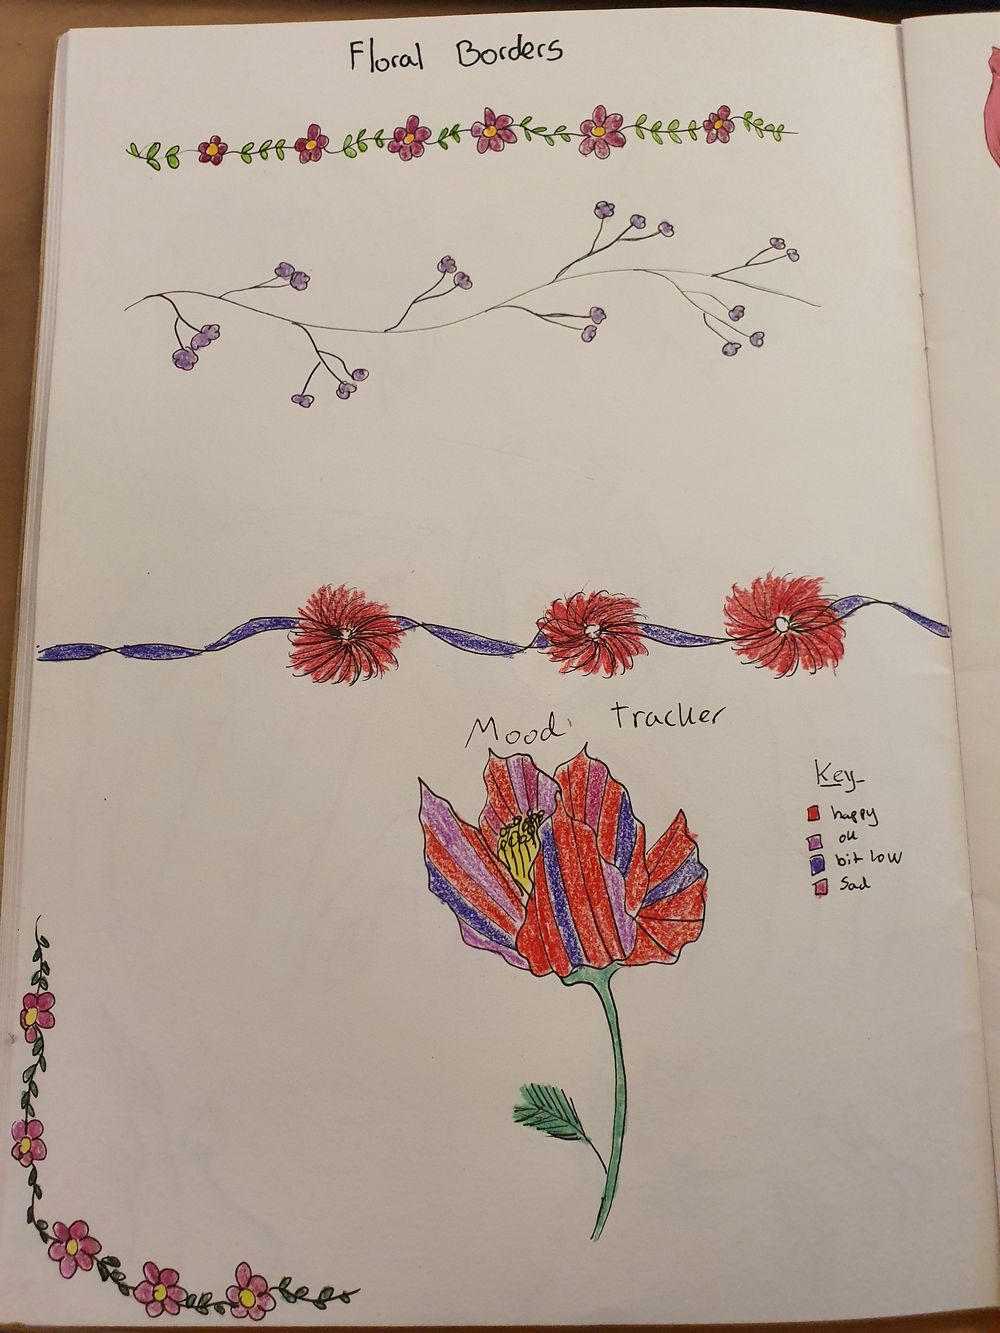 Flower pattens - image 2 - student project